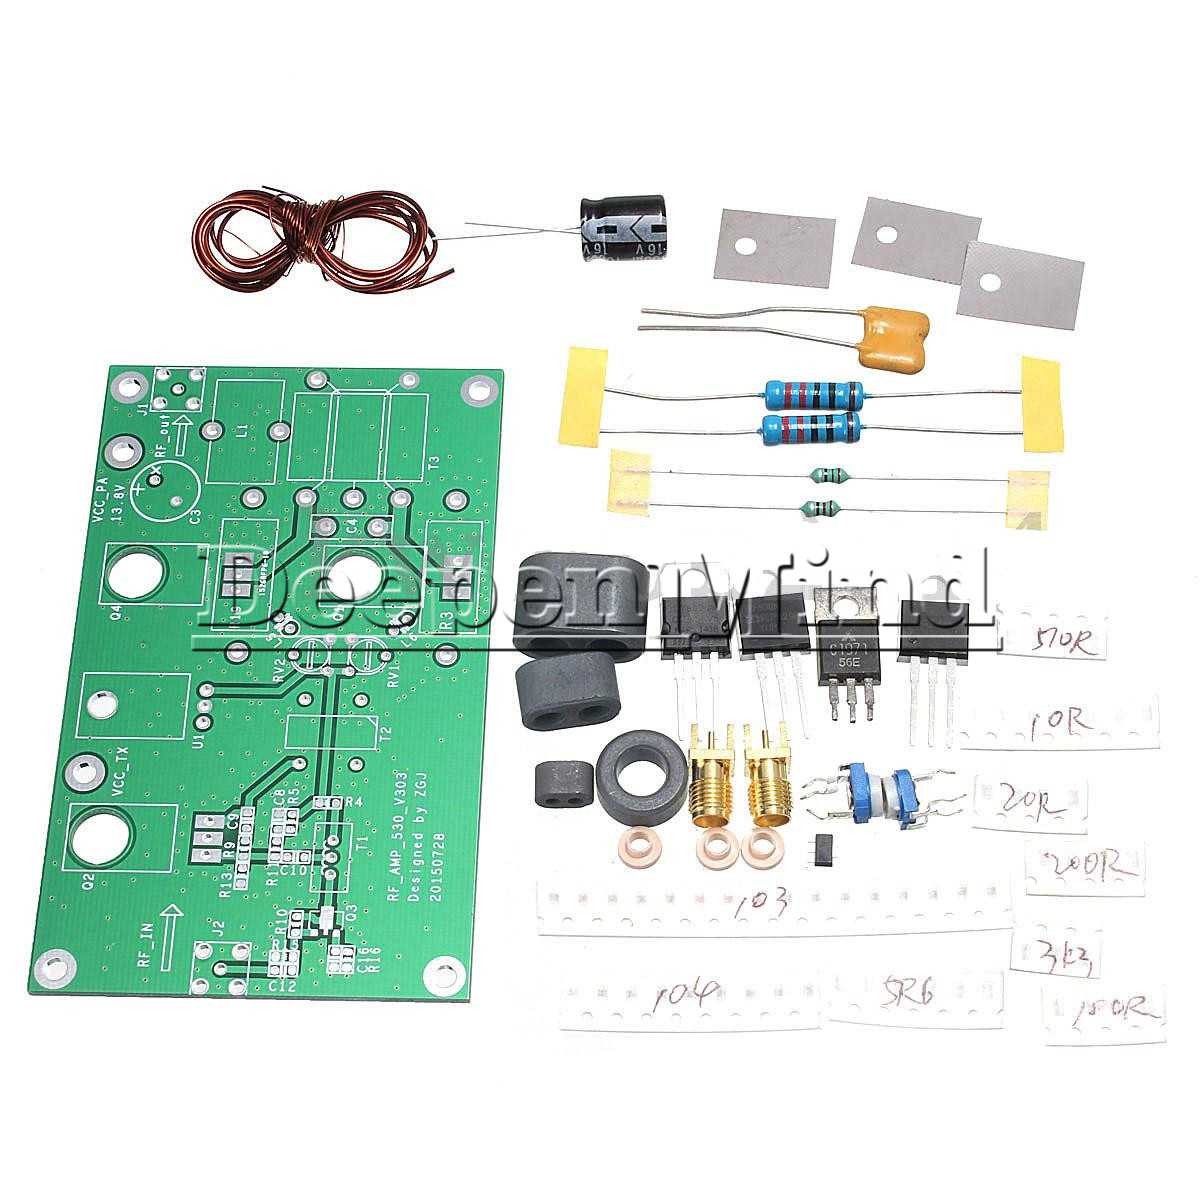 45 70w ssb linear hf power amplifier diy kits for transceiver yaesu ft 817 kx3 ebay. Black Bedroom Furniture Sets. Home Design Ideas